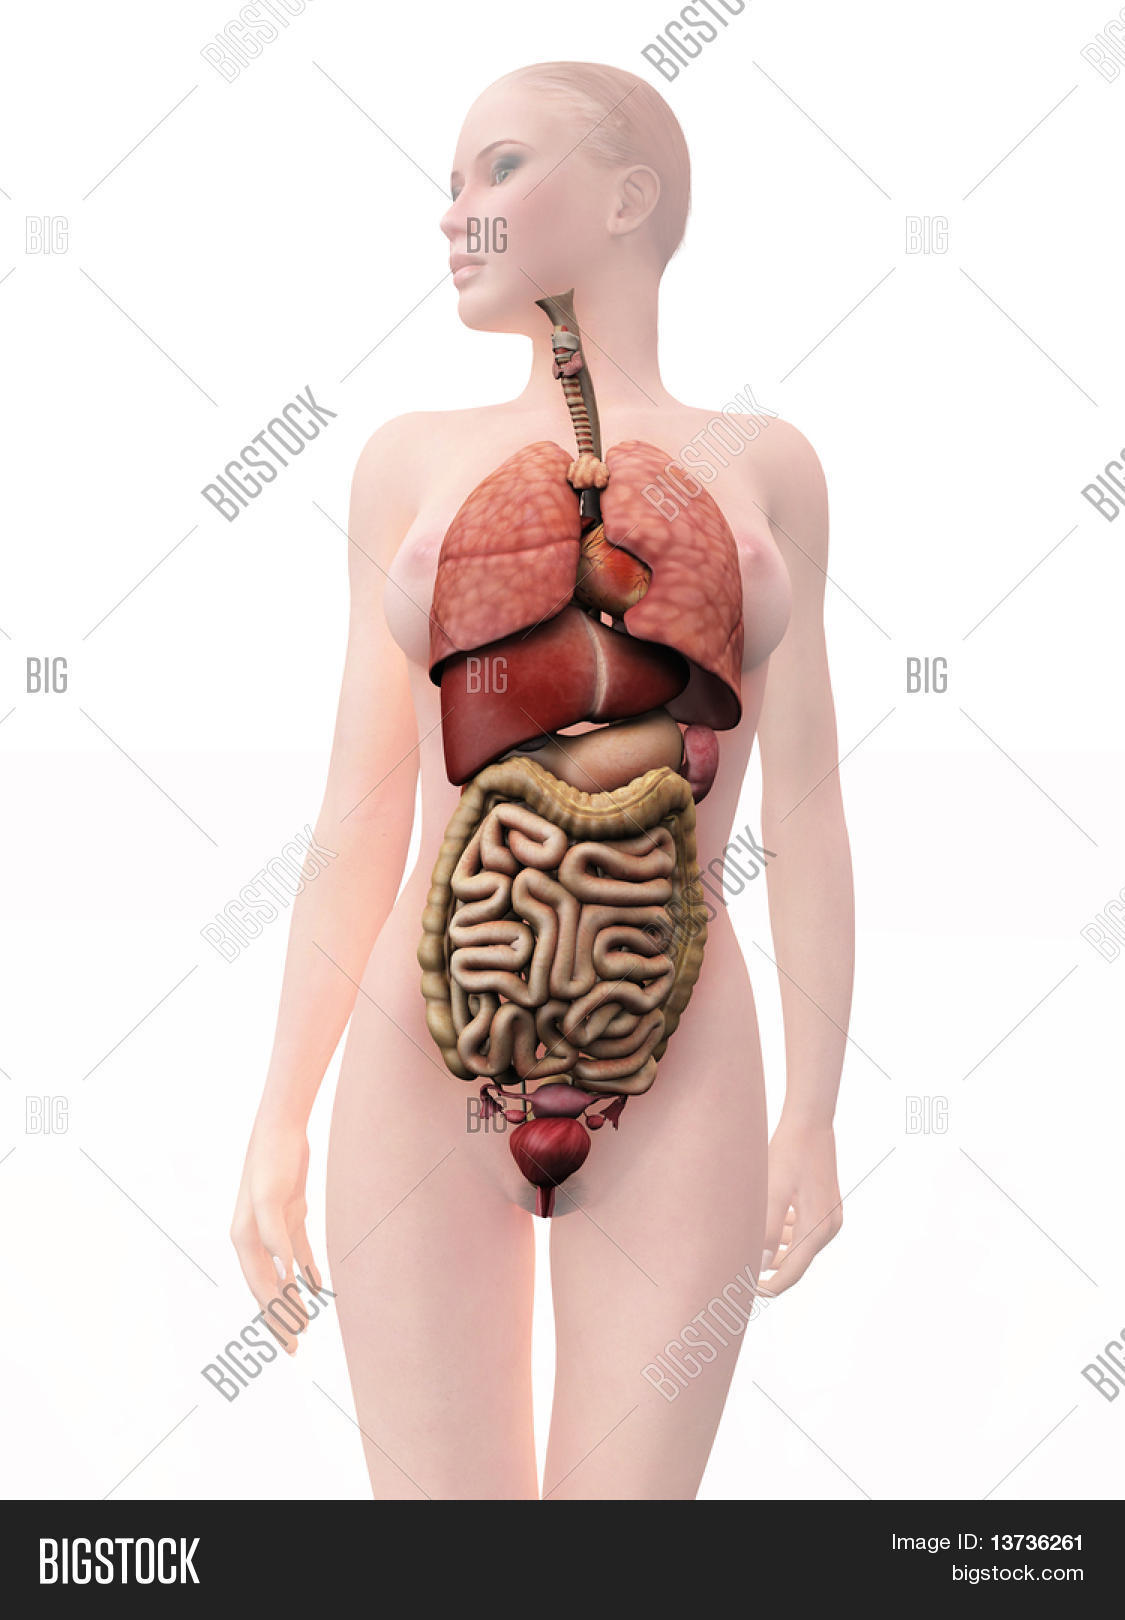 Internal Human Organs Image Photo Free Trial Bigstock